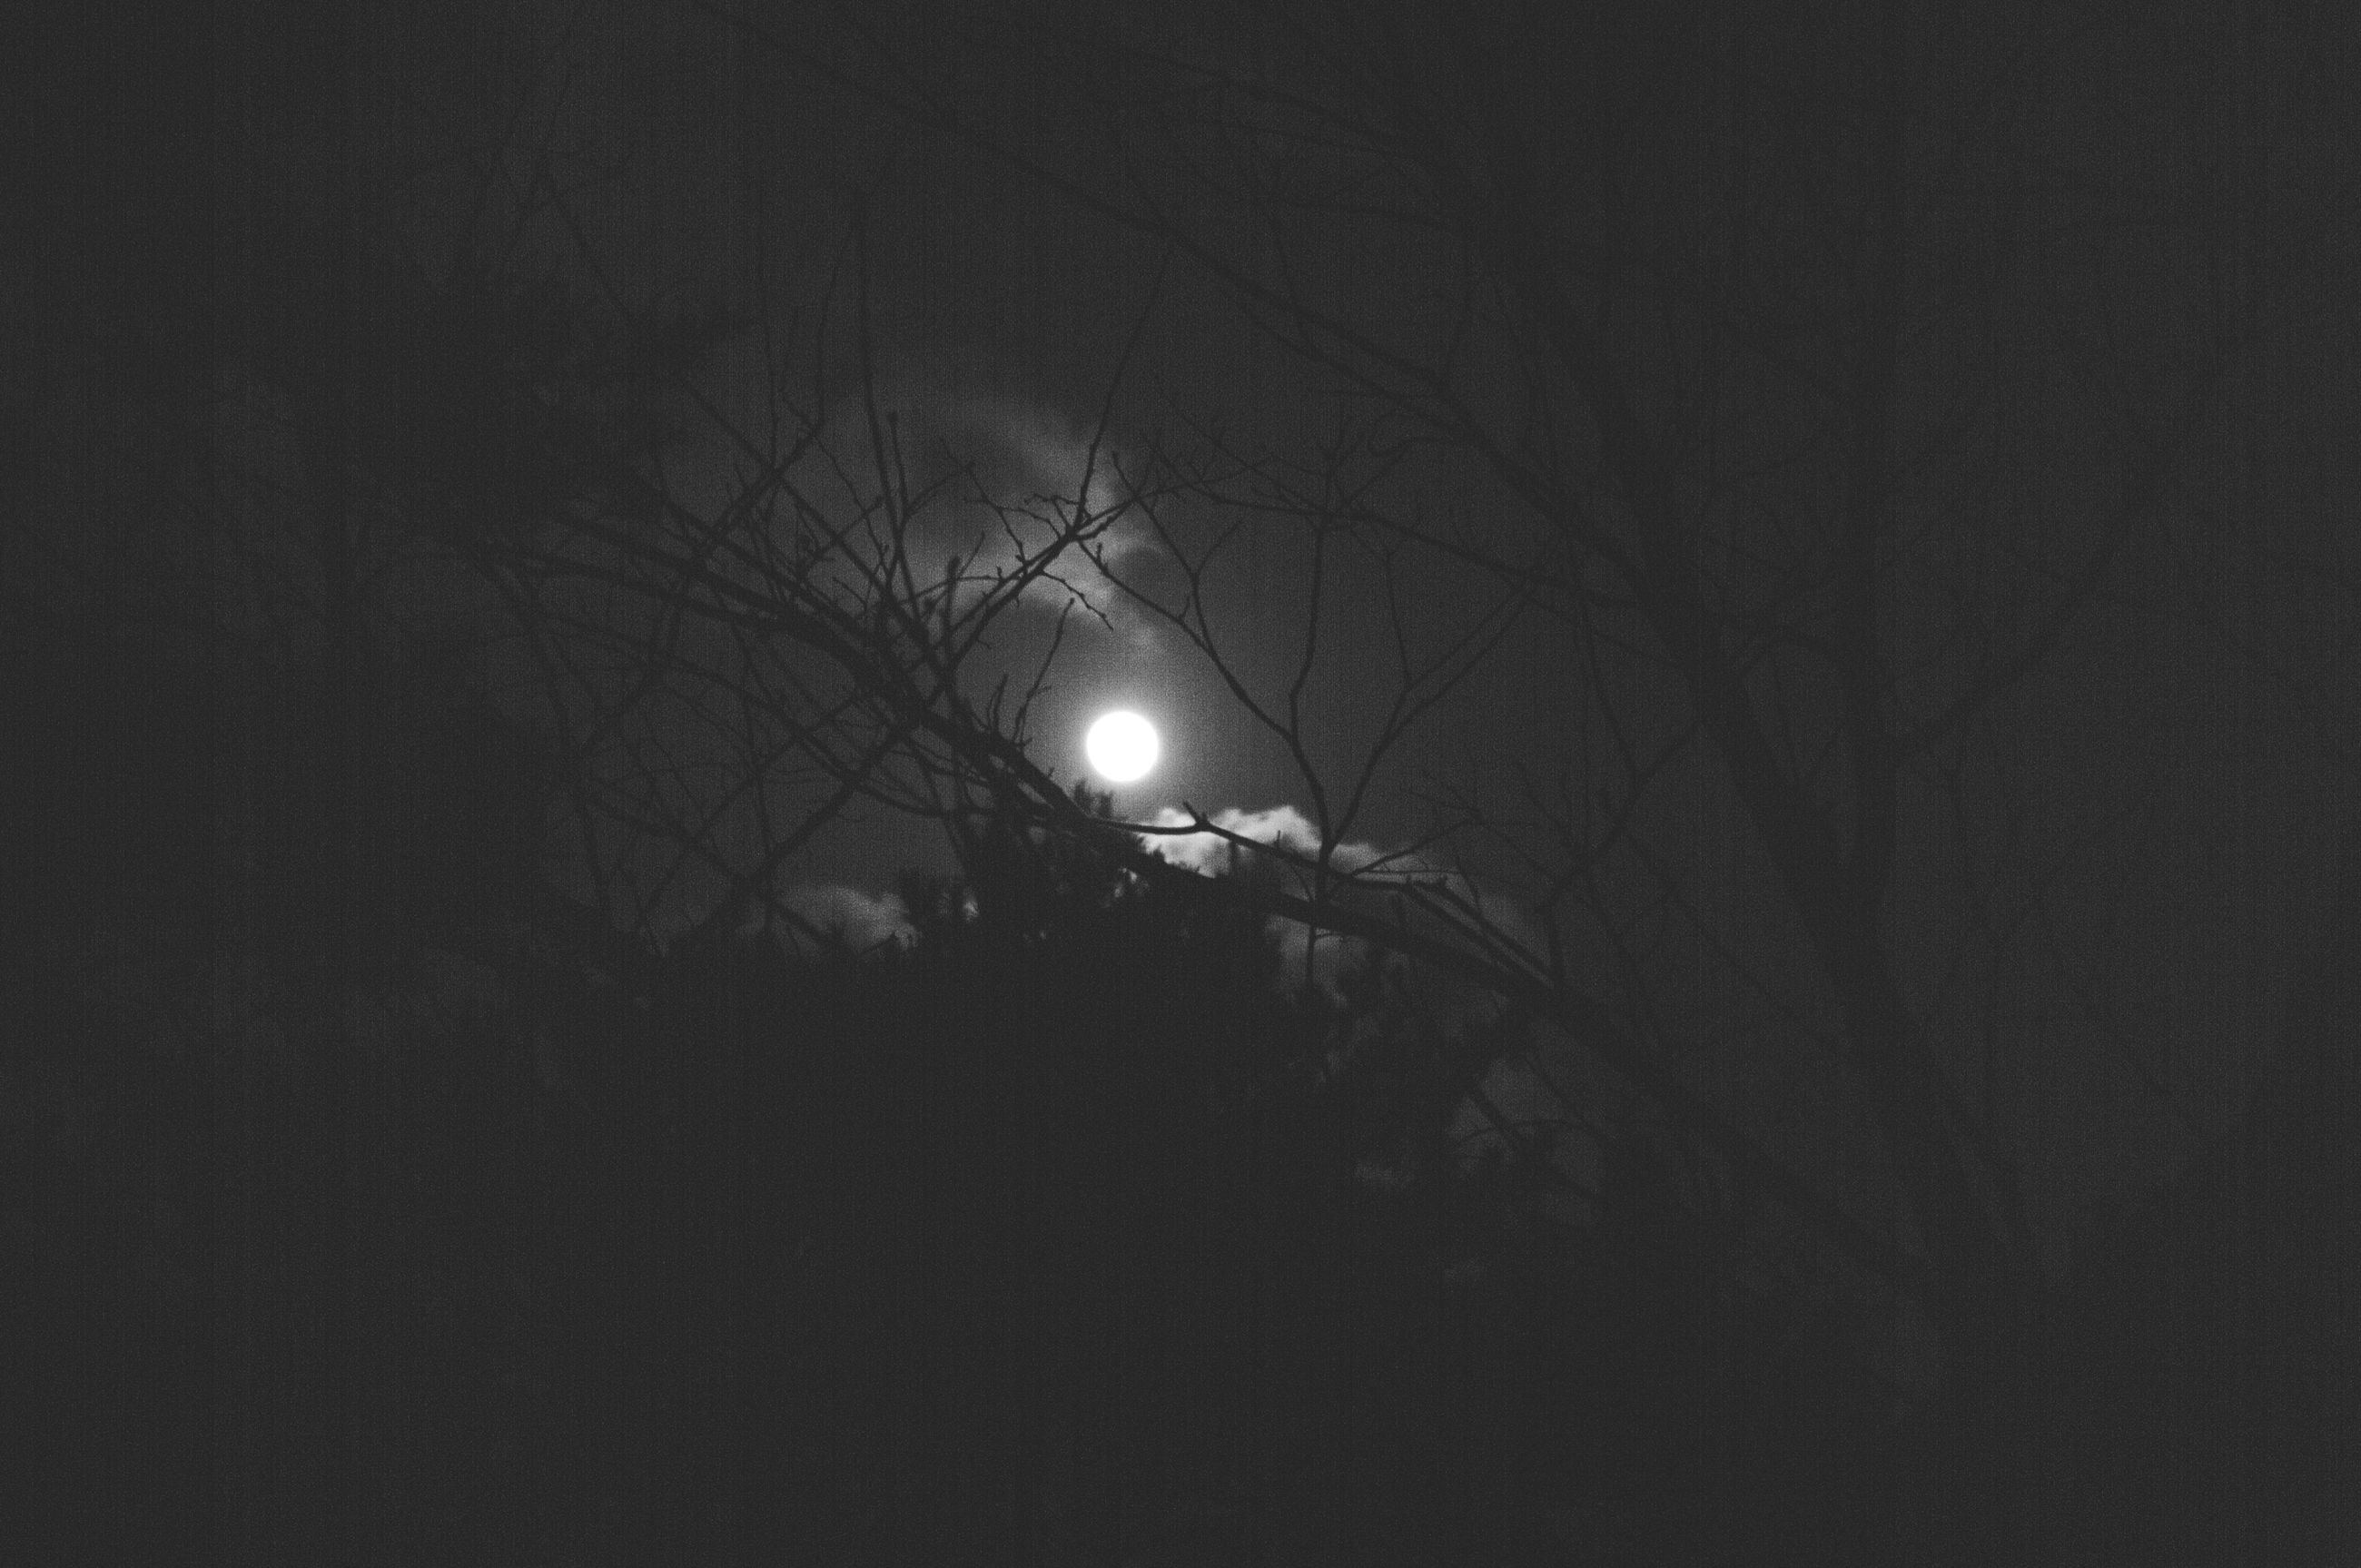 night, illuminated, lighting equipment, low angle view, dark, street light, silhouette, copy space, light - natural phenomenon, sky, electricity, glowing, outdoors, moon, nature, weather, electric light, no people, tranquility, tree